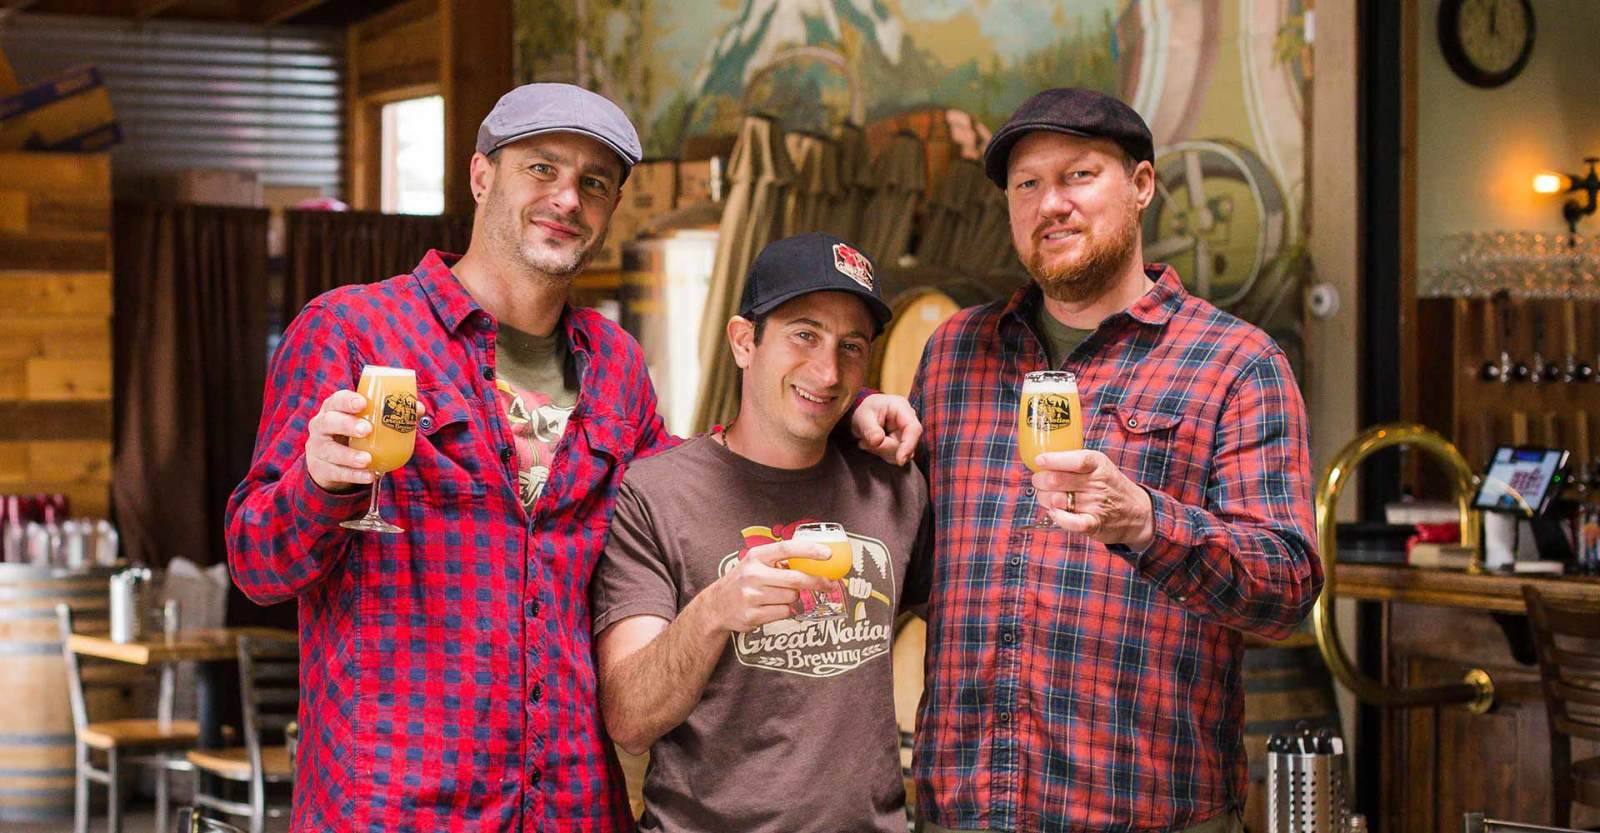 Founders of Great Notion Brewing, James Dugan, Paul Reiter, and Andy Miller